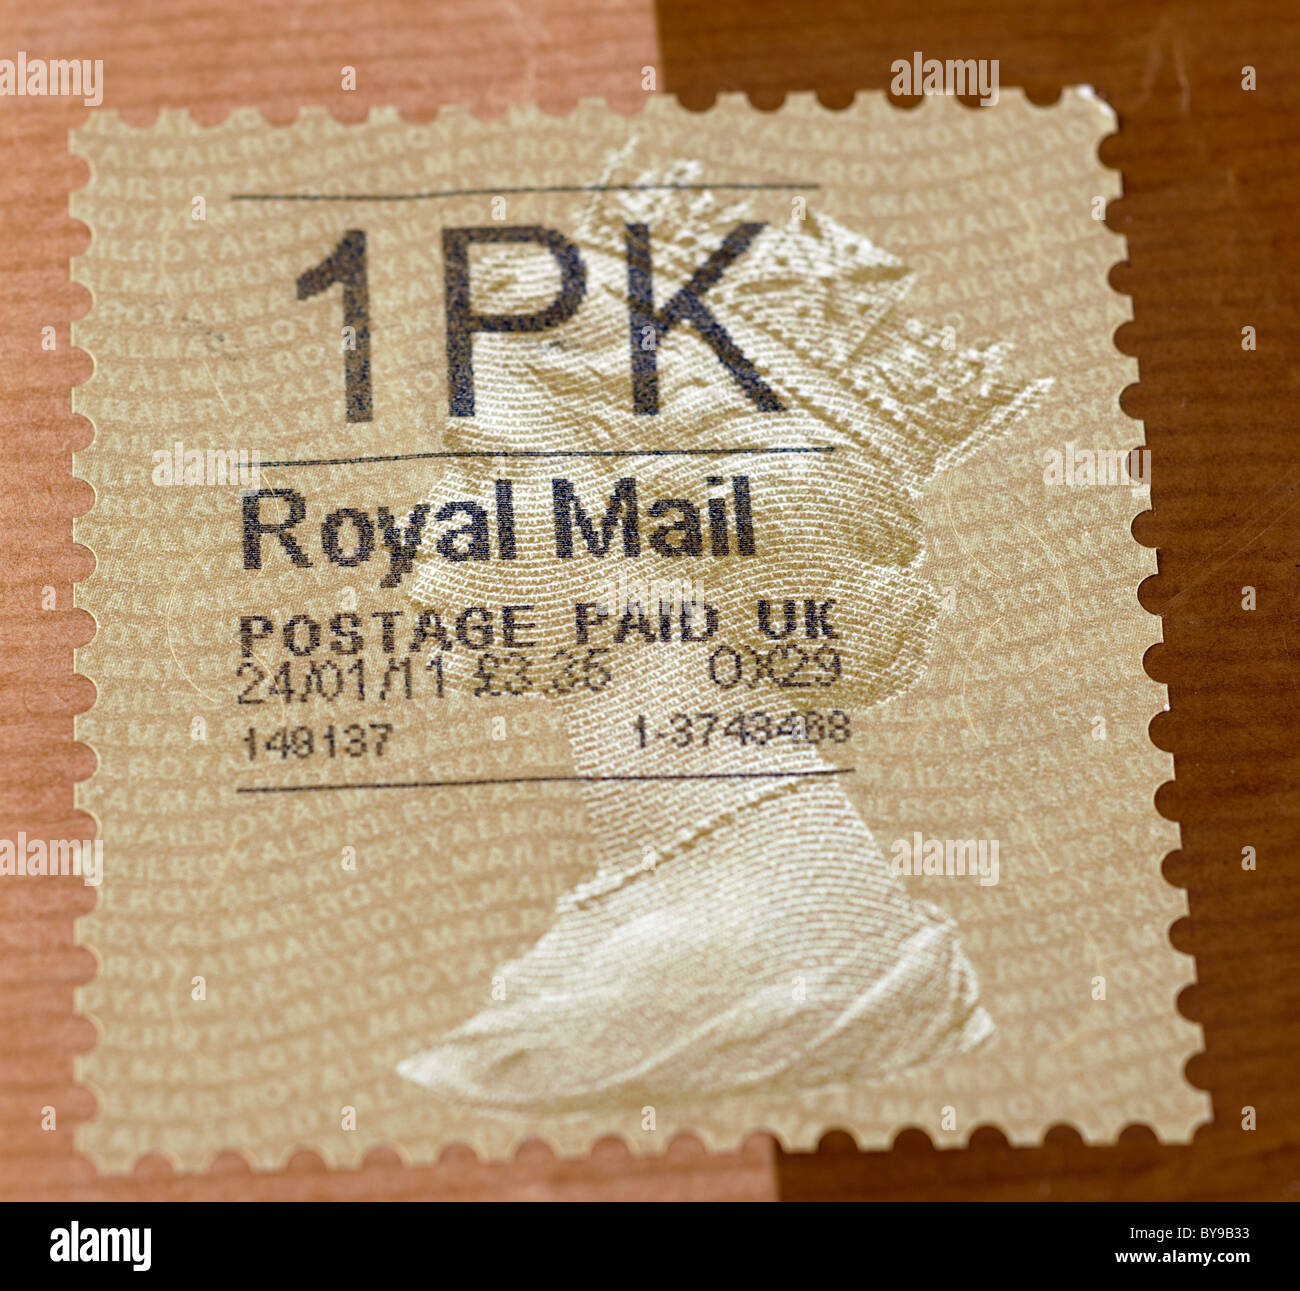 Royal Mail Postage stamp on a packet costing £3.35 and dated 24/01/11. EDITORIAL USE ONLY - Stock Image